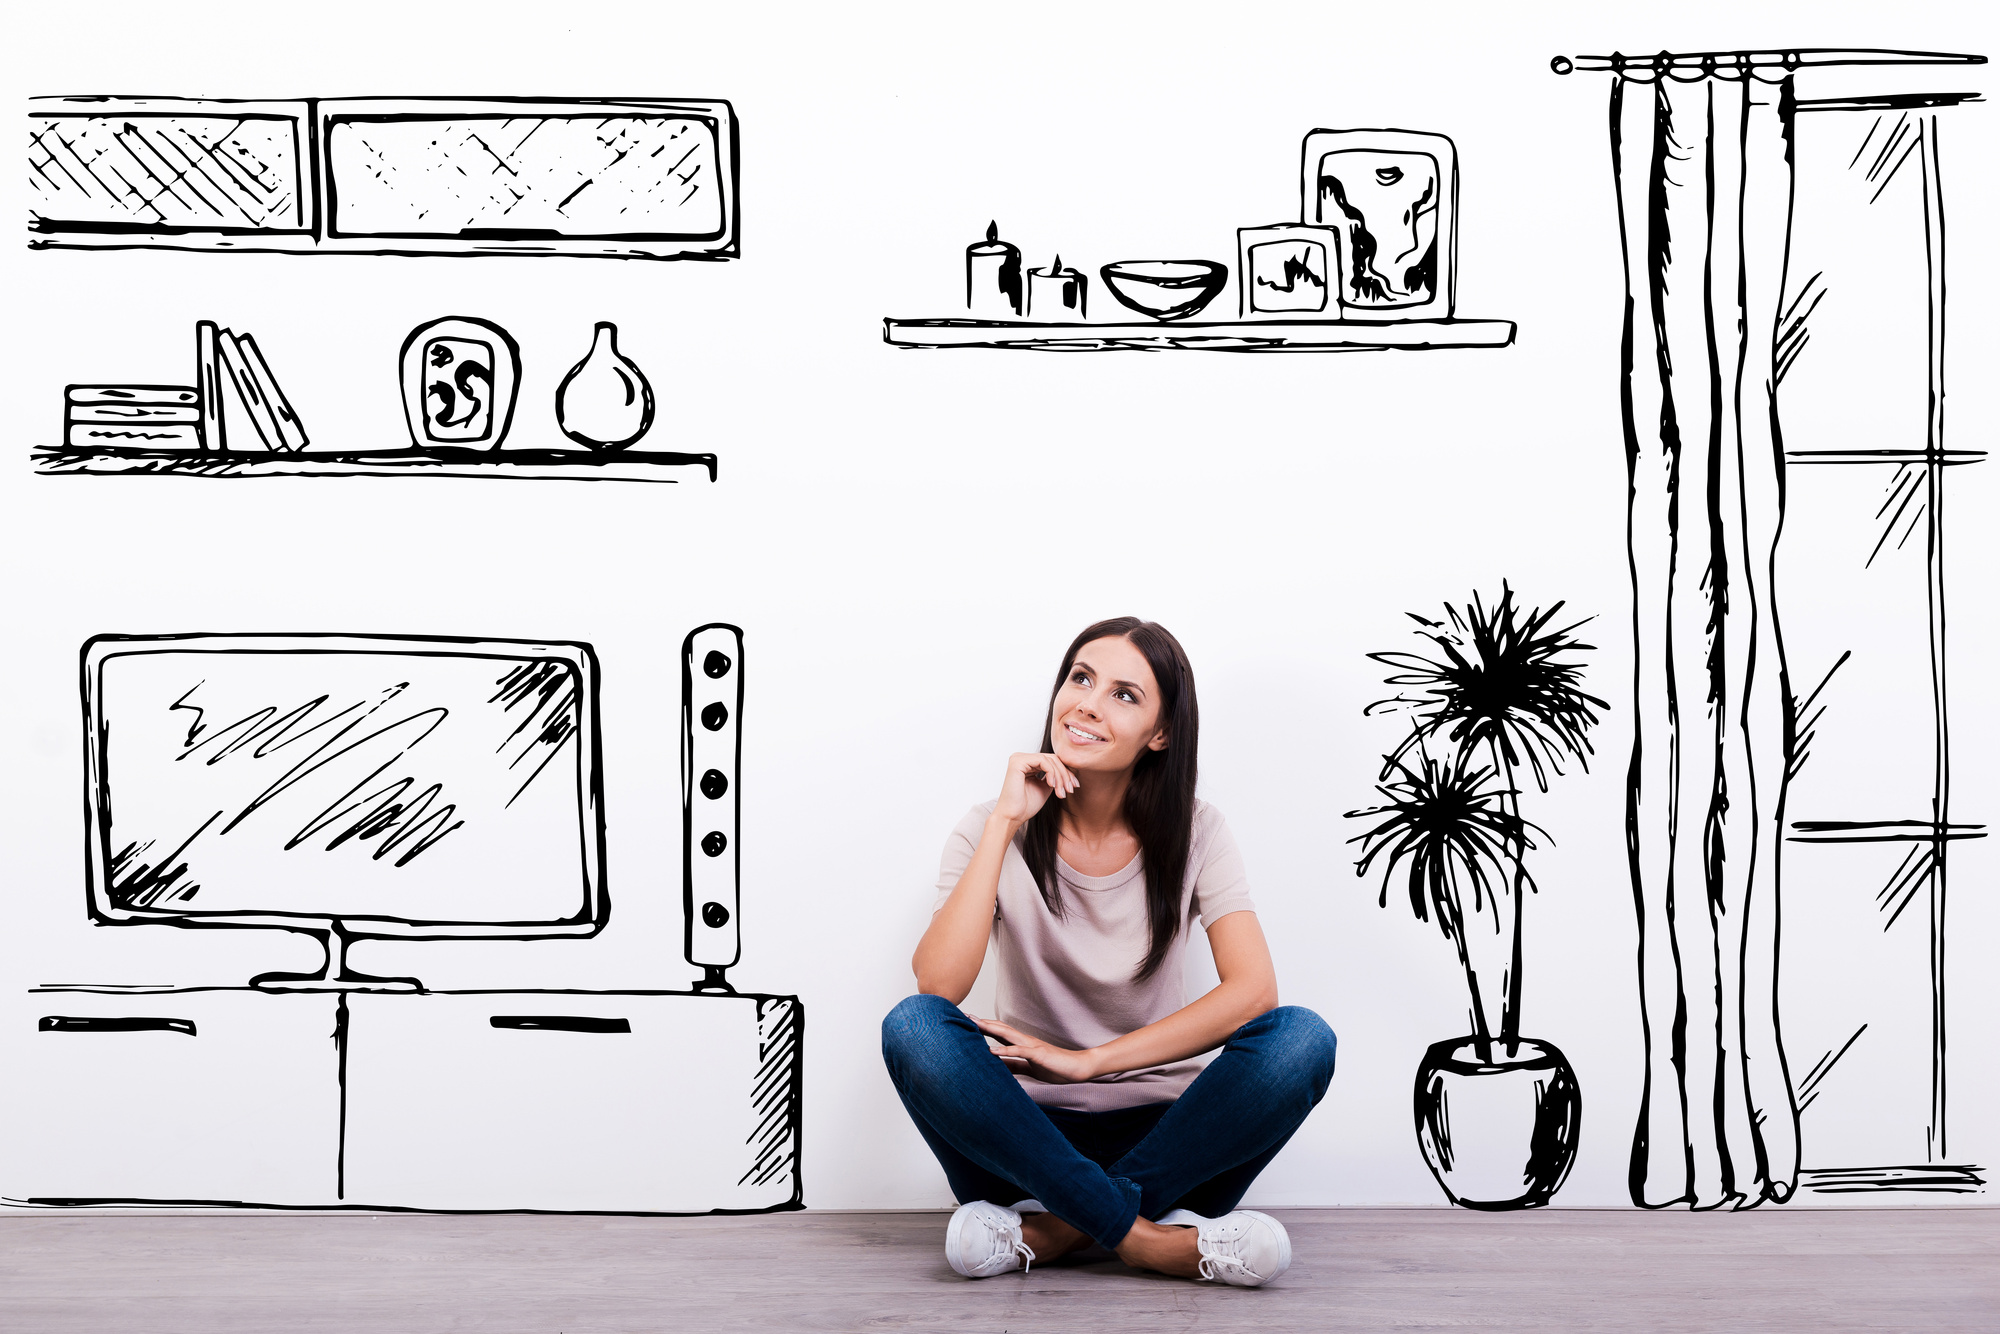 Home Remodels: DIY or Hire a Professional?